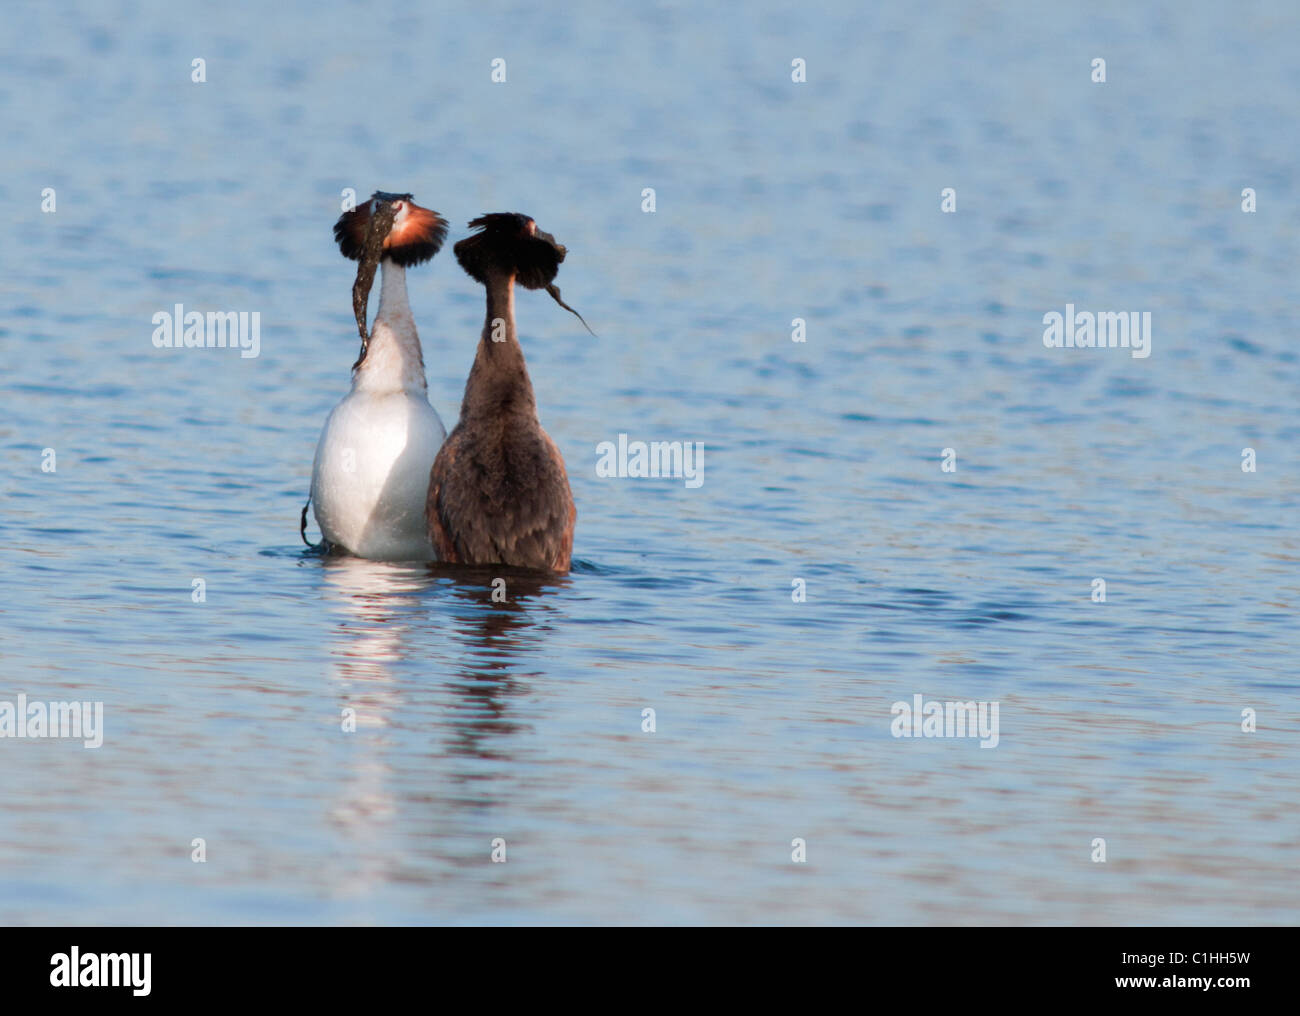 Great Crested Grebes Podiceps cristatus in courtship display performing weed dance - Stock Image